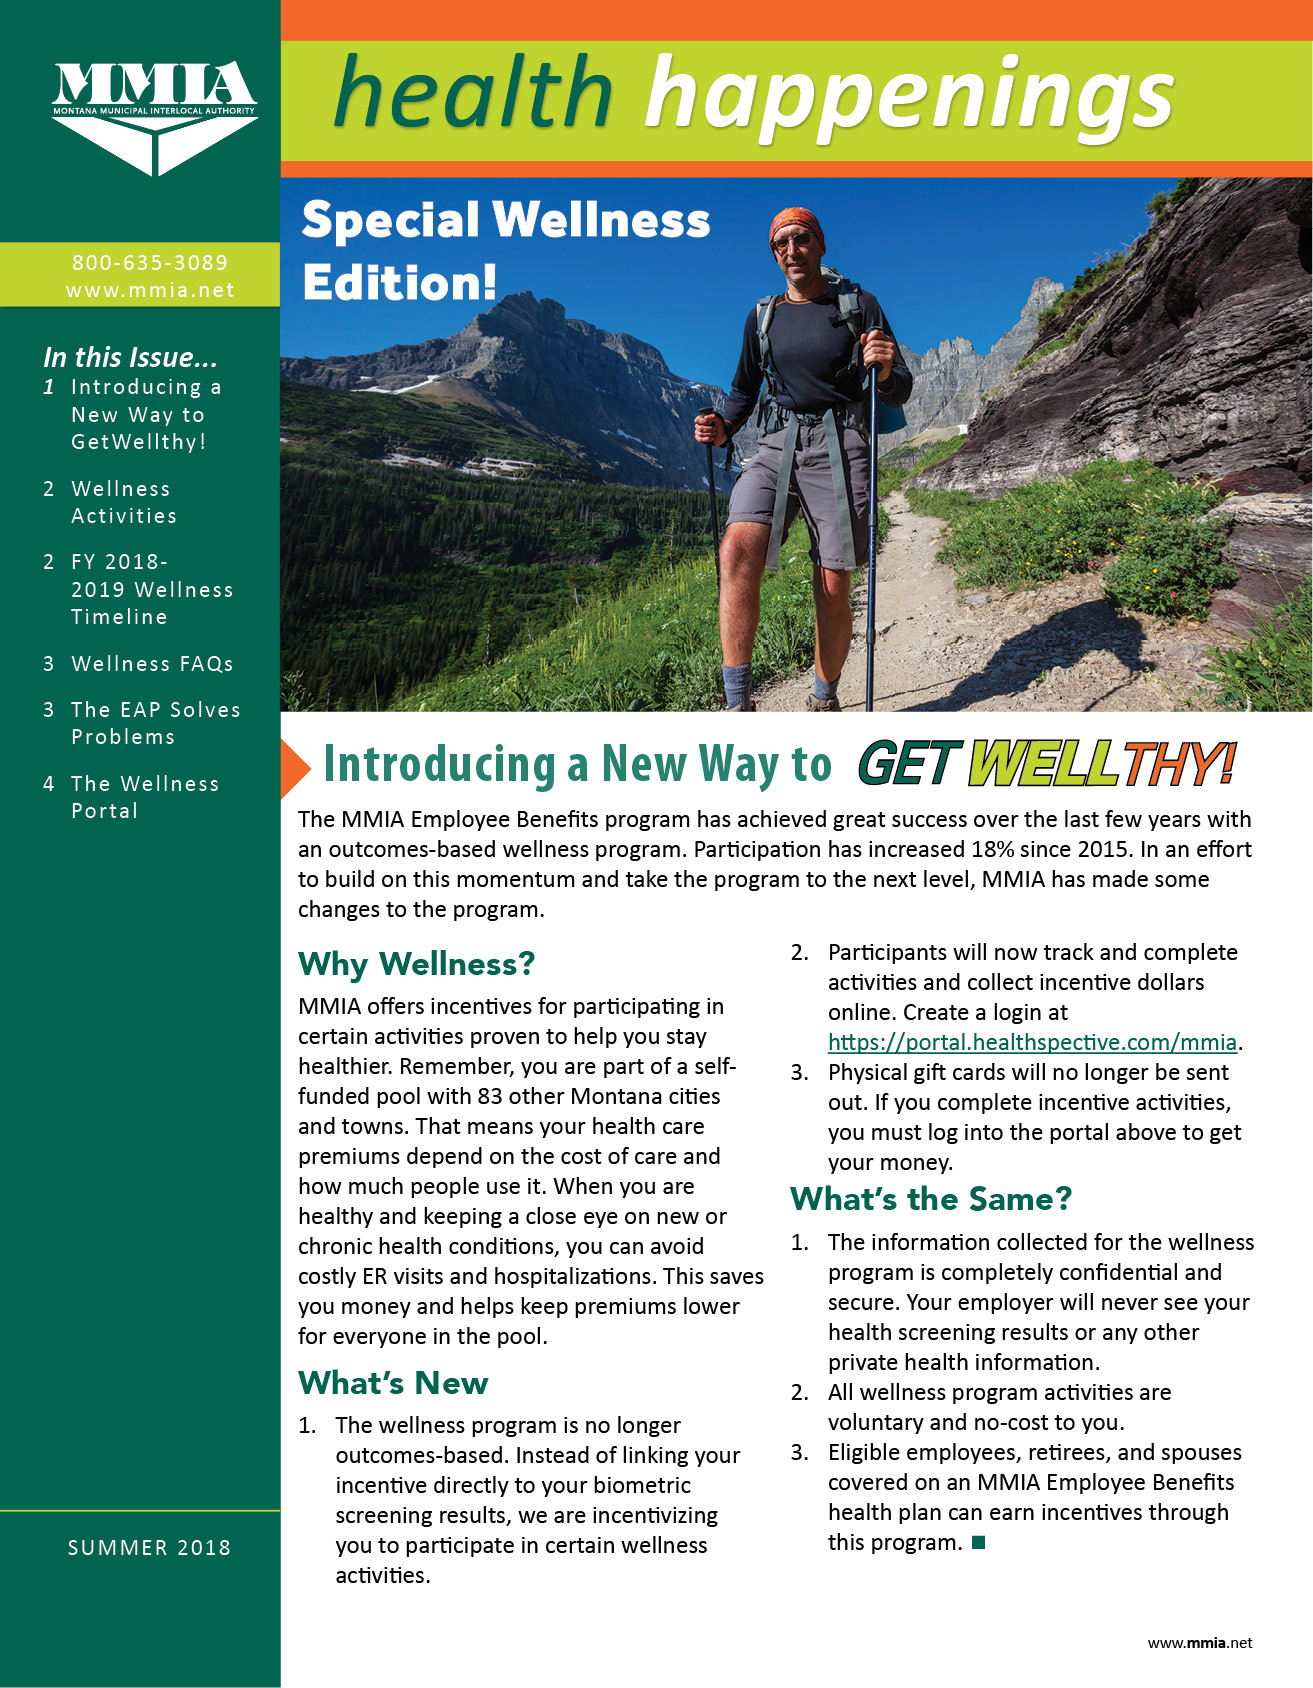 Summer 2018 Health Happenings - Special Wellness Edition!